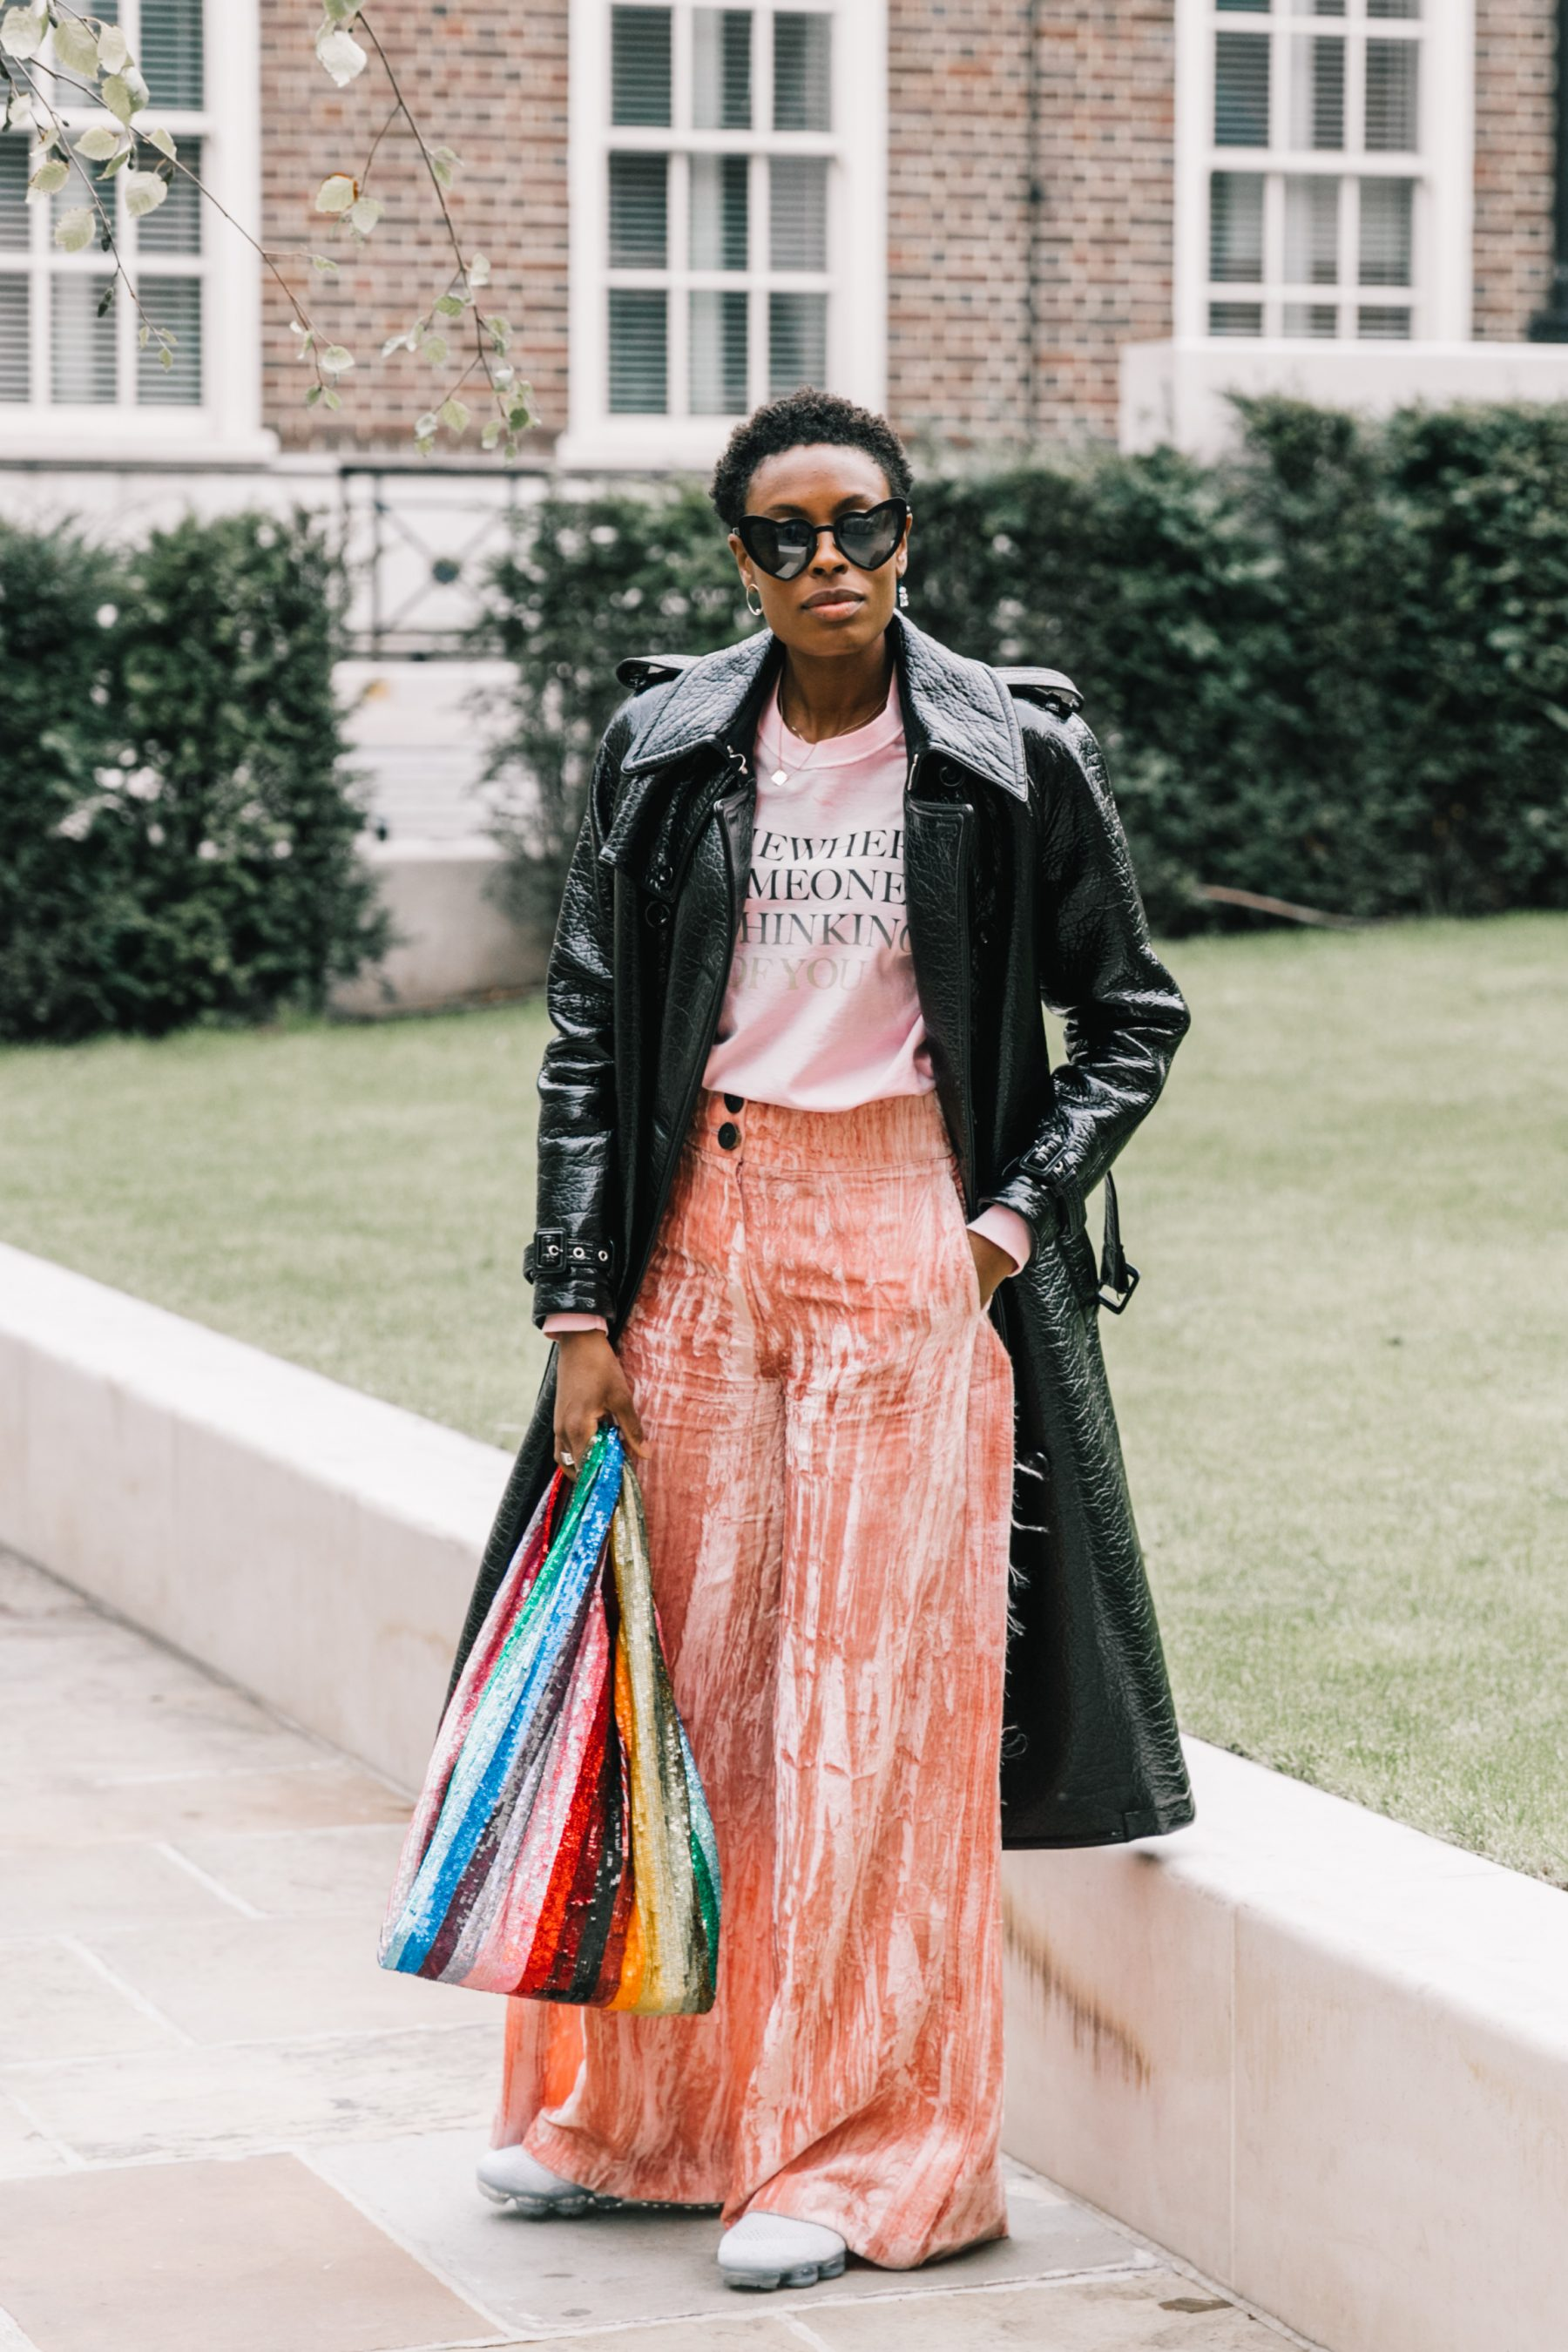 collagevintage.LFW-SS18-London_Fashion_Week-Street_Style-Vogue-Collage_Vintage-127-1-1800x2700